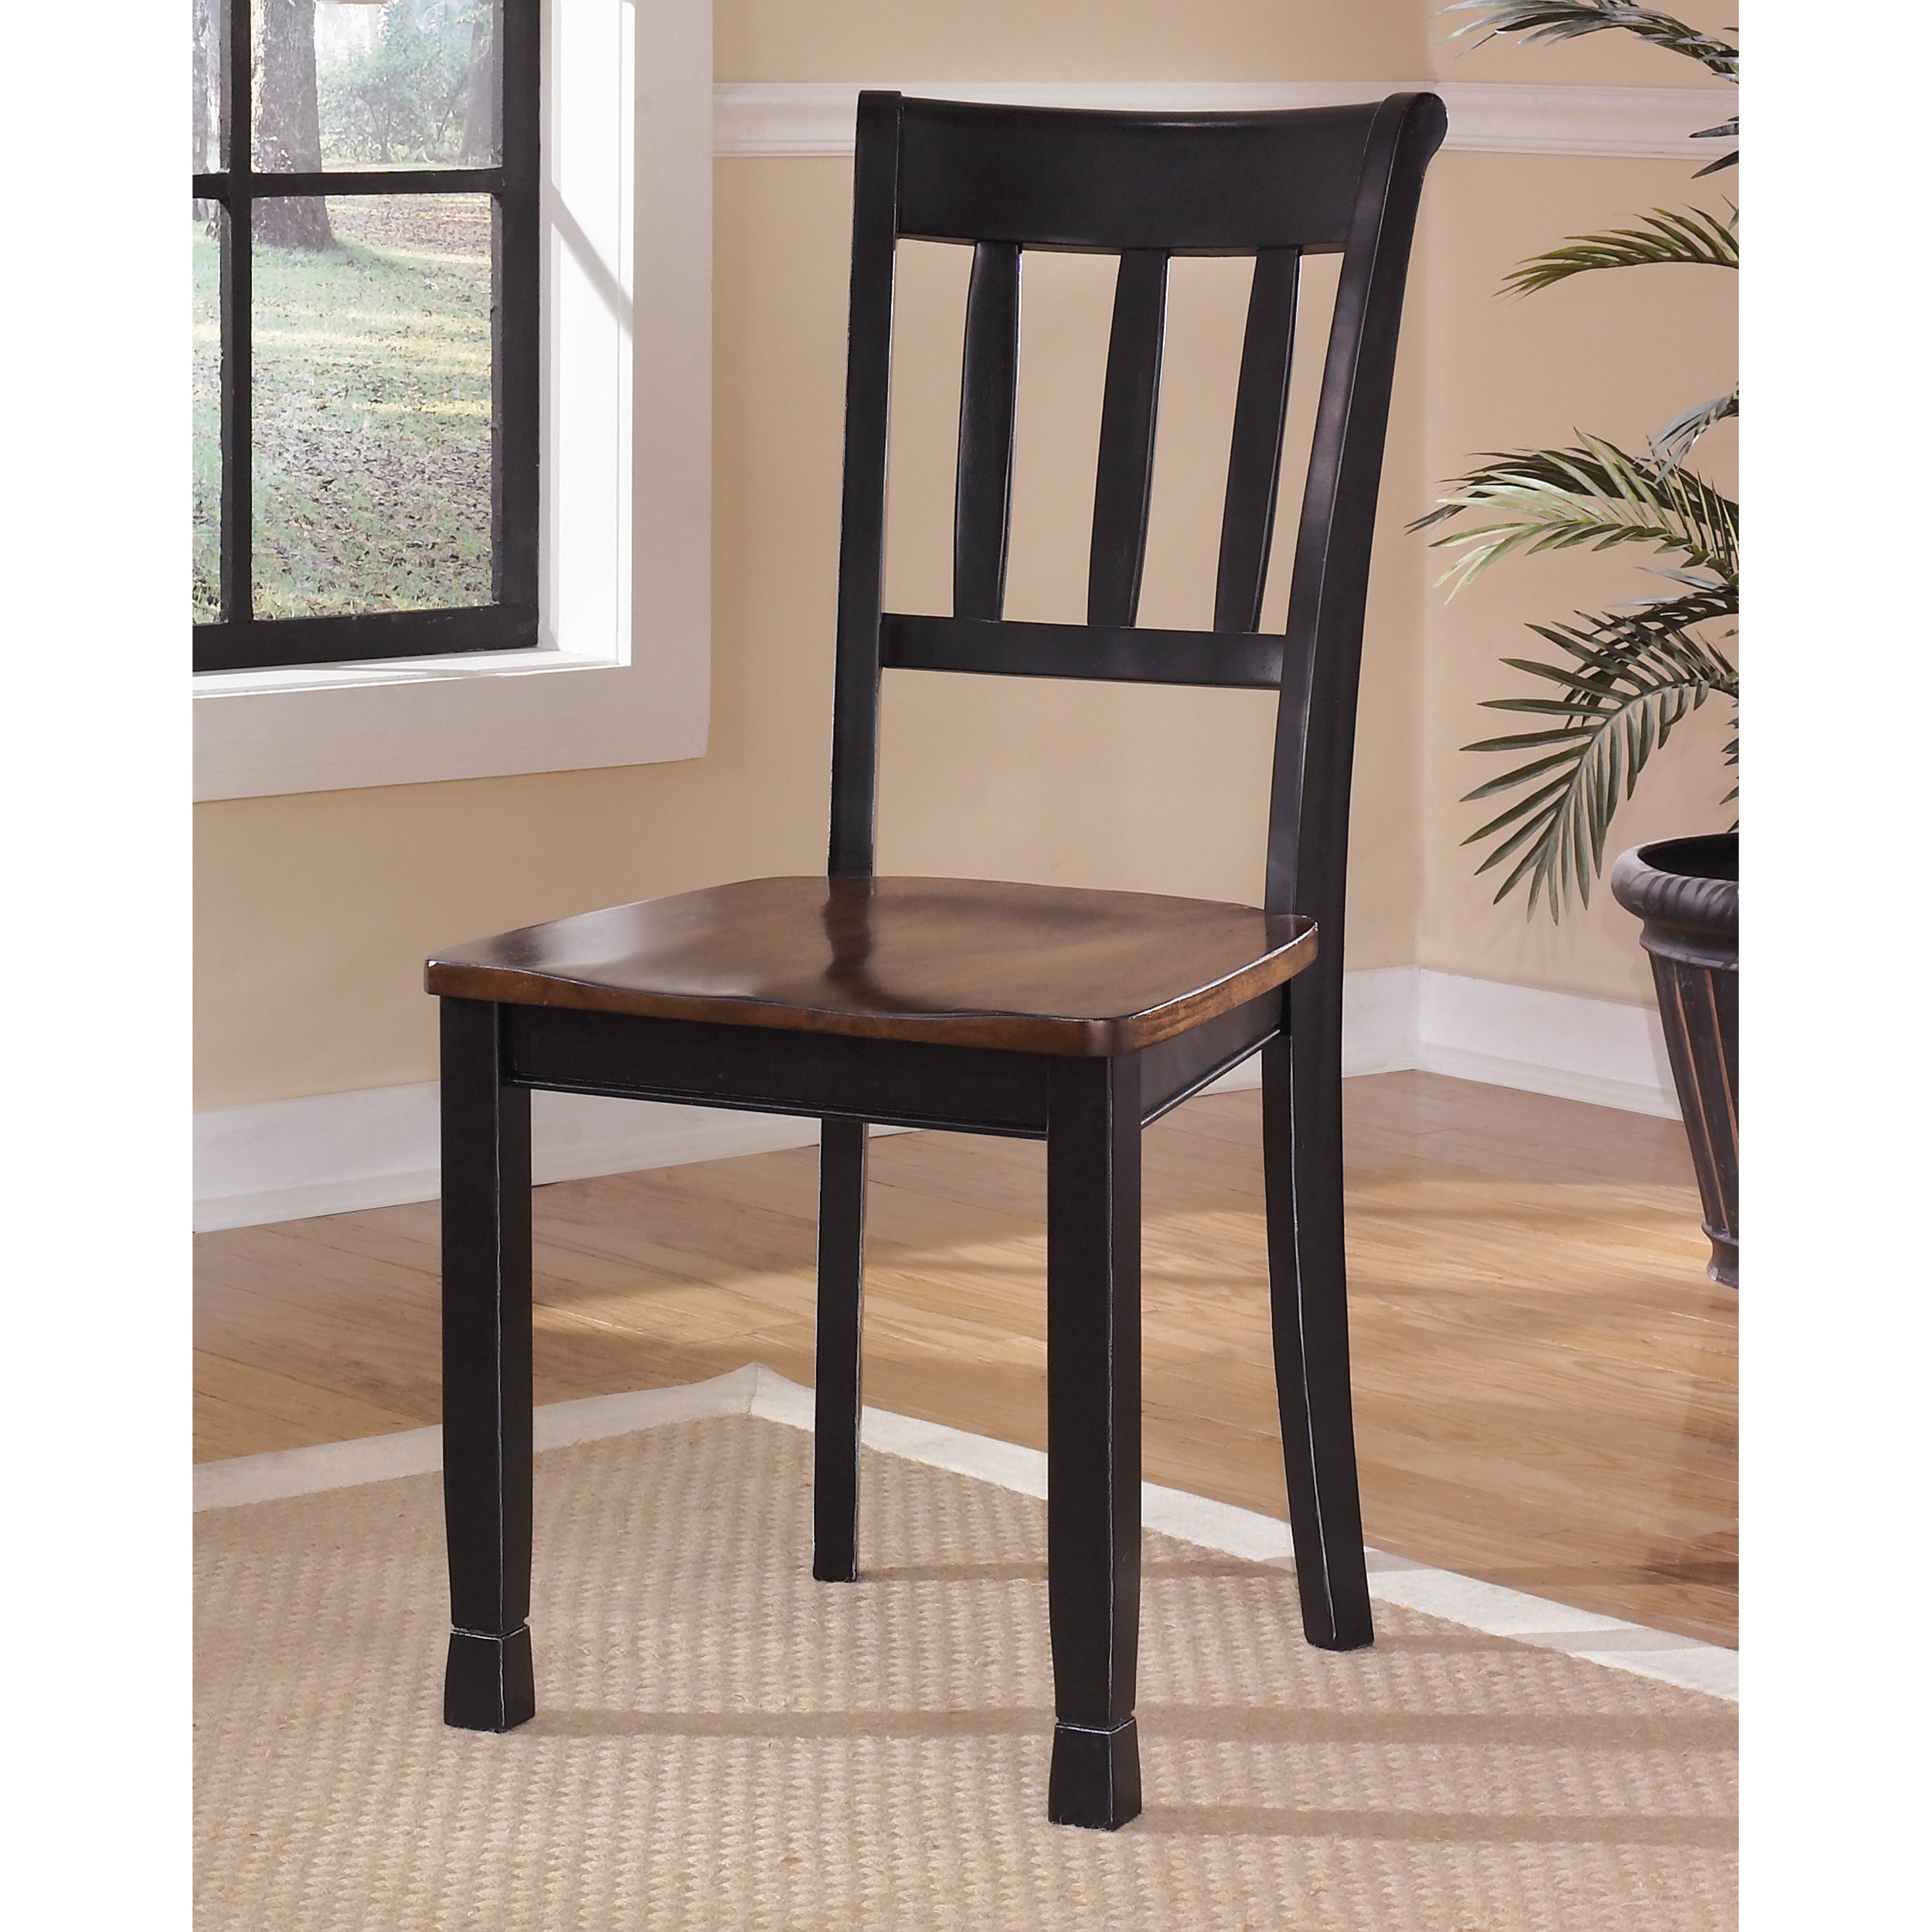 Signature Design By Ashley Owingsville Medium Brown/Black Wood Ladderback  Dining Chairs (Set Of 2)   Free Shipping Today   Overstock   16237322